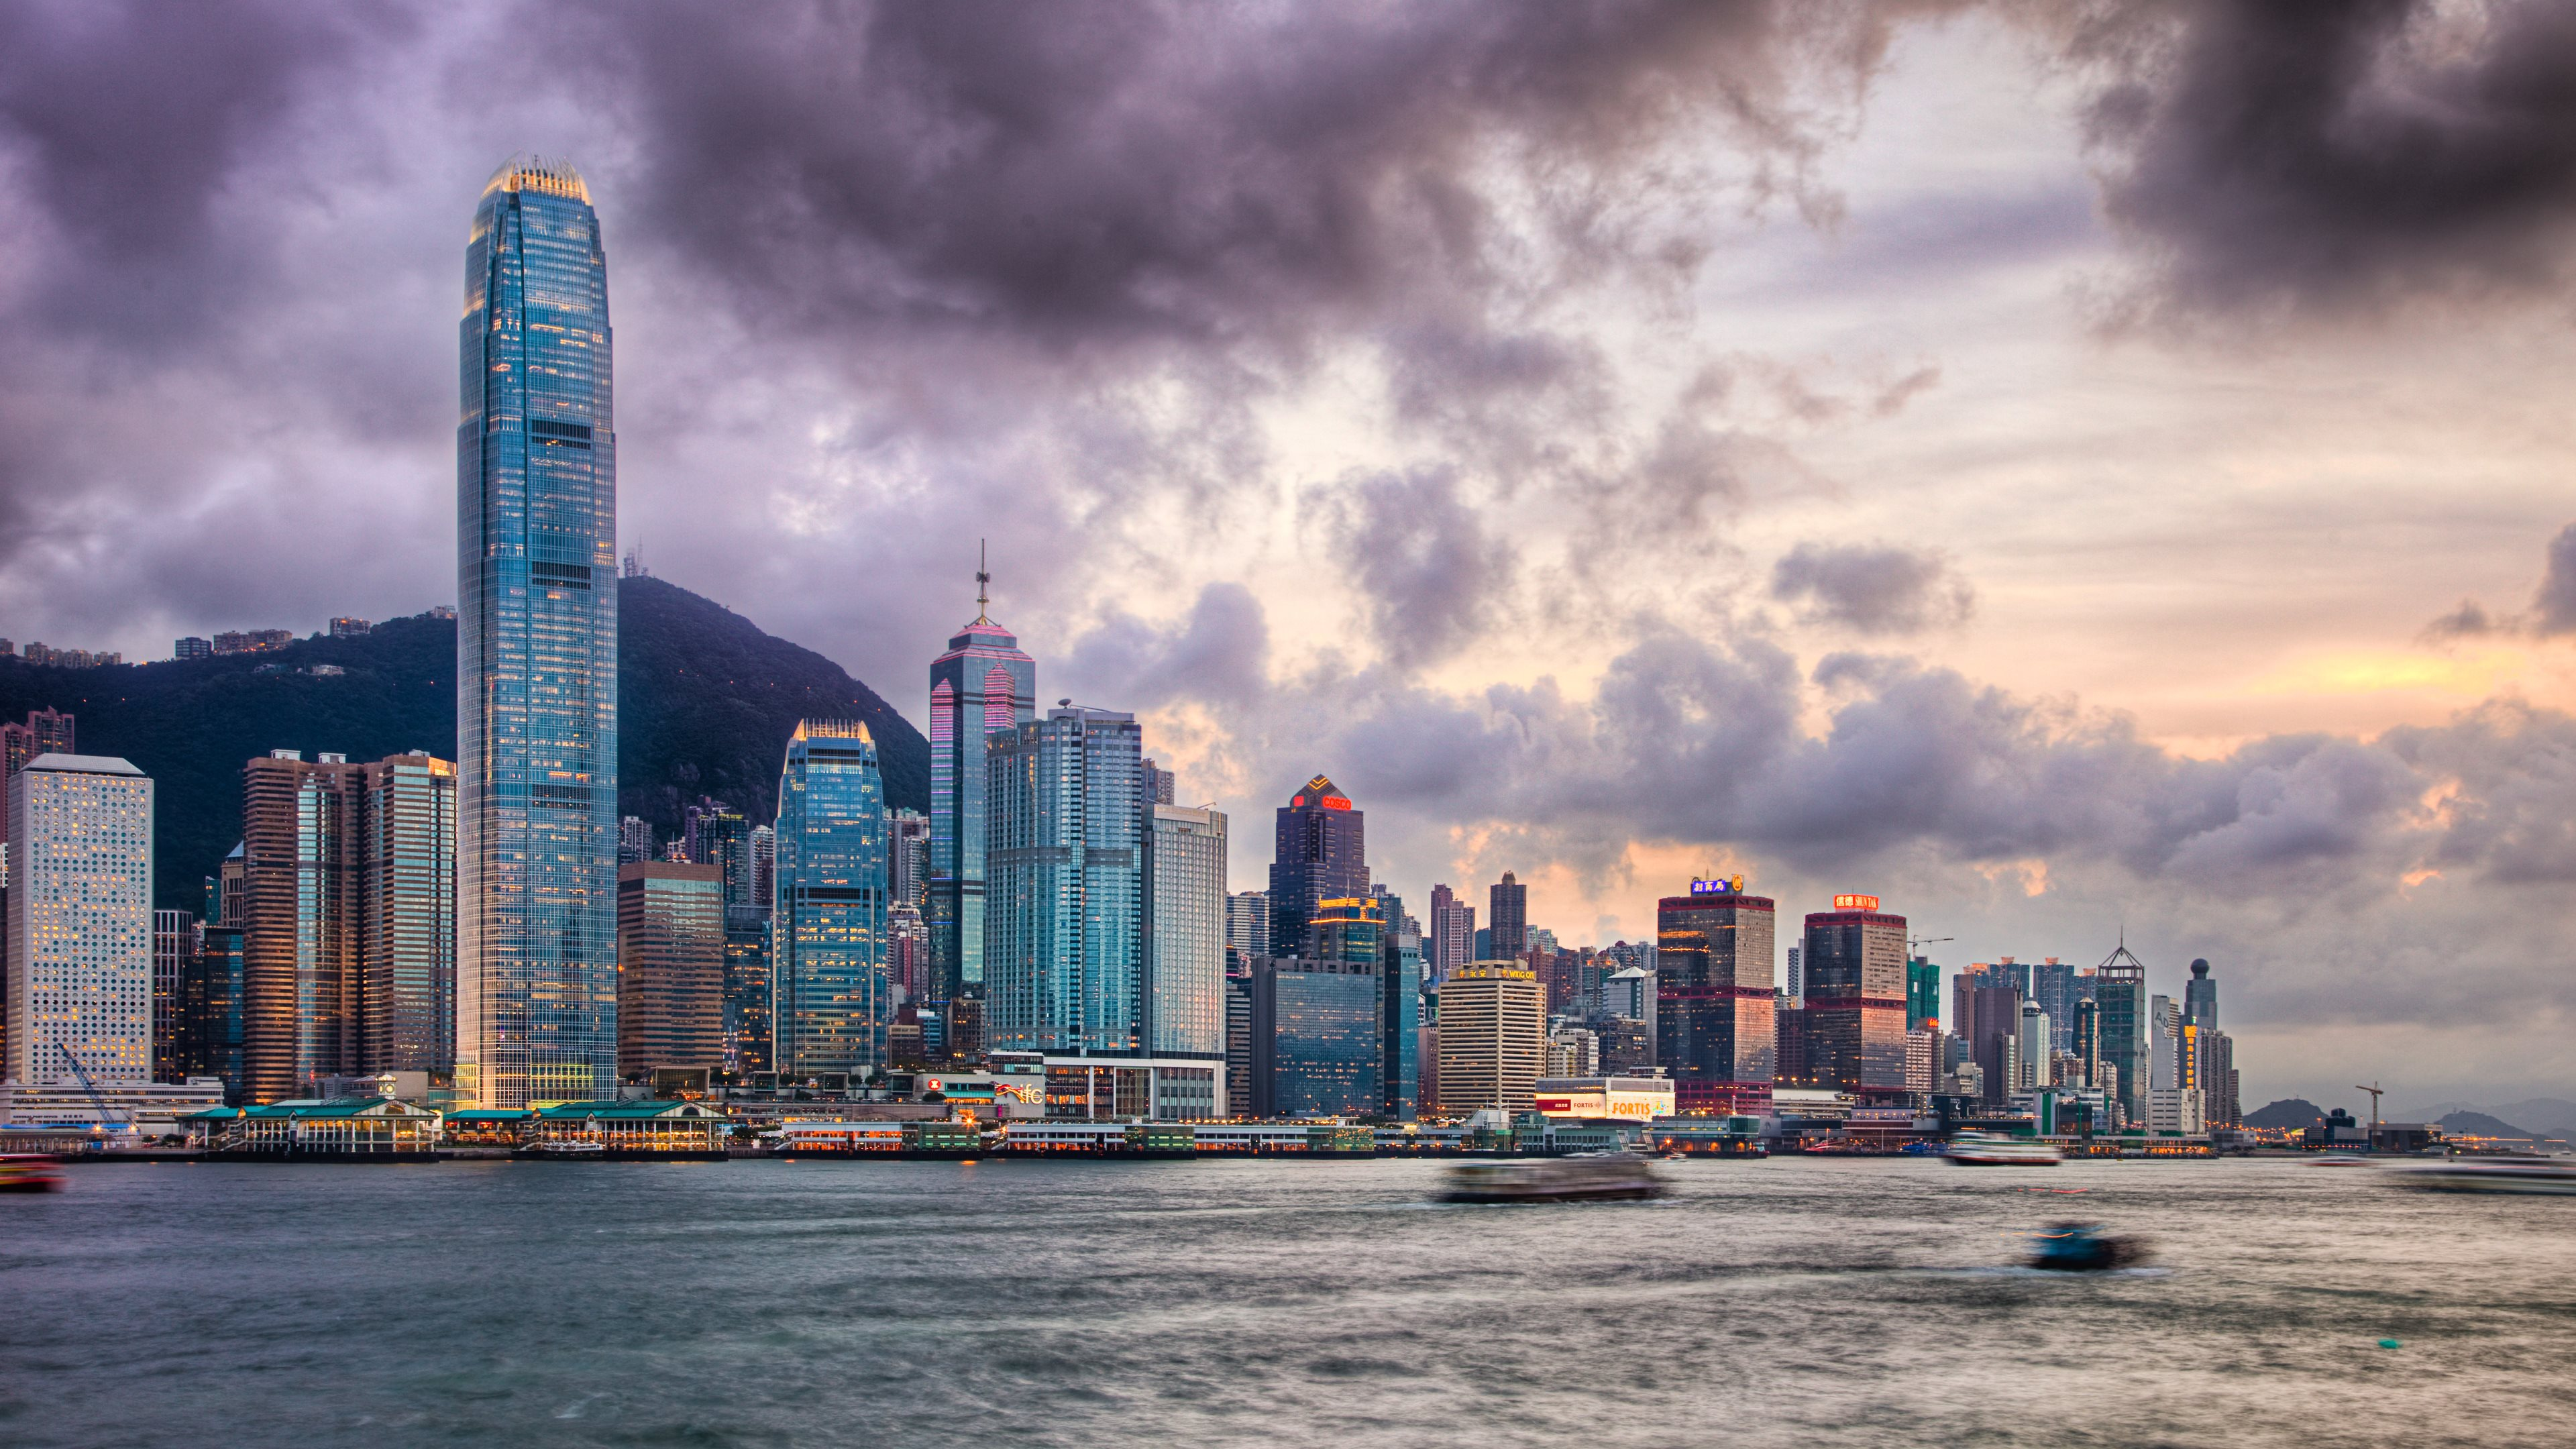 4k-ultra-hd-wallpaper-Hong-Kong-unabuenaidea.es (4)